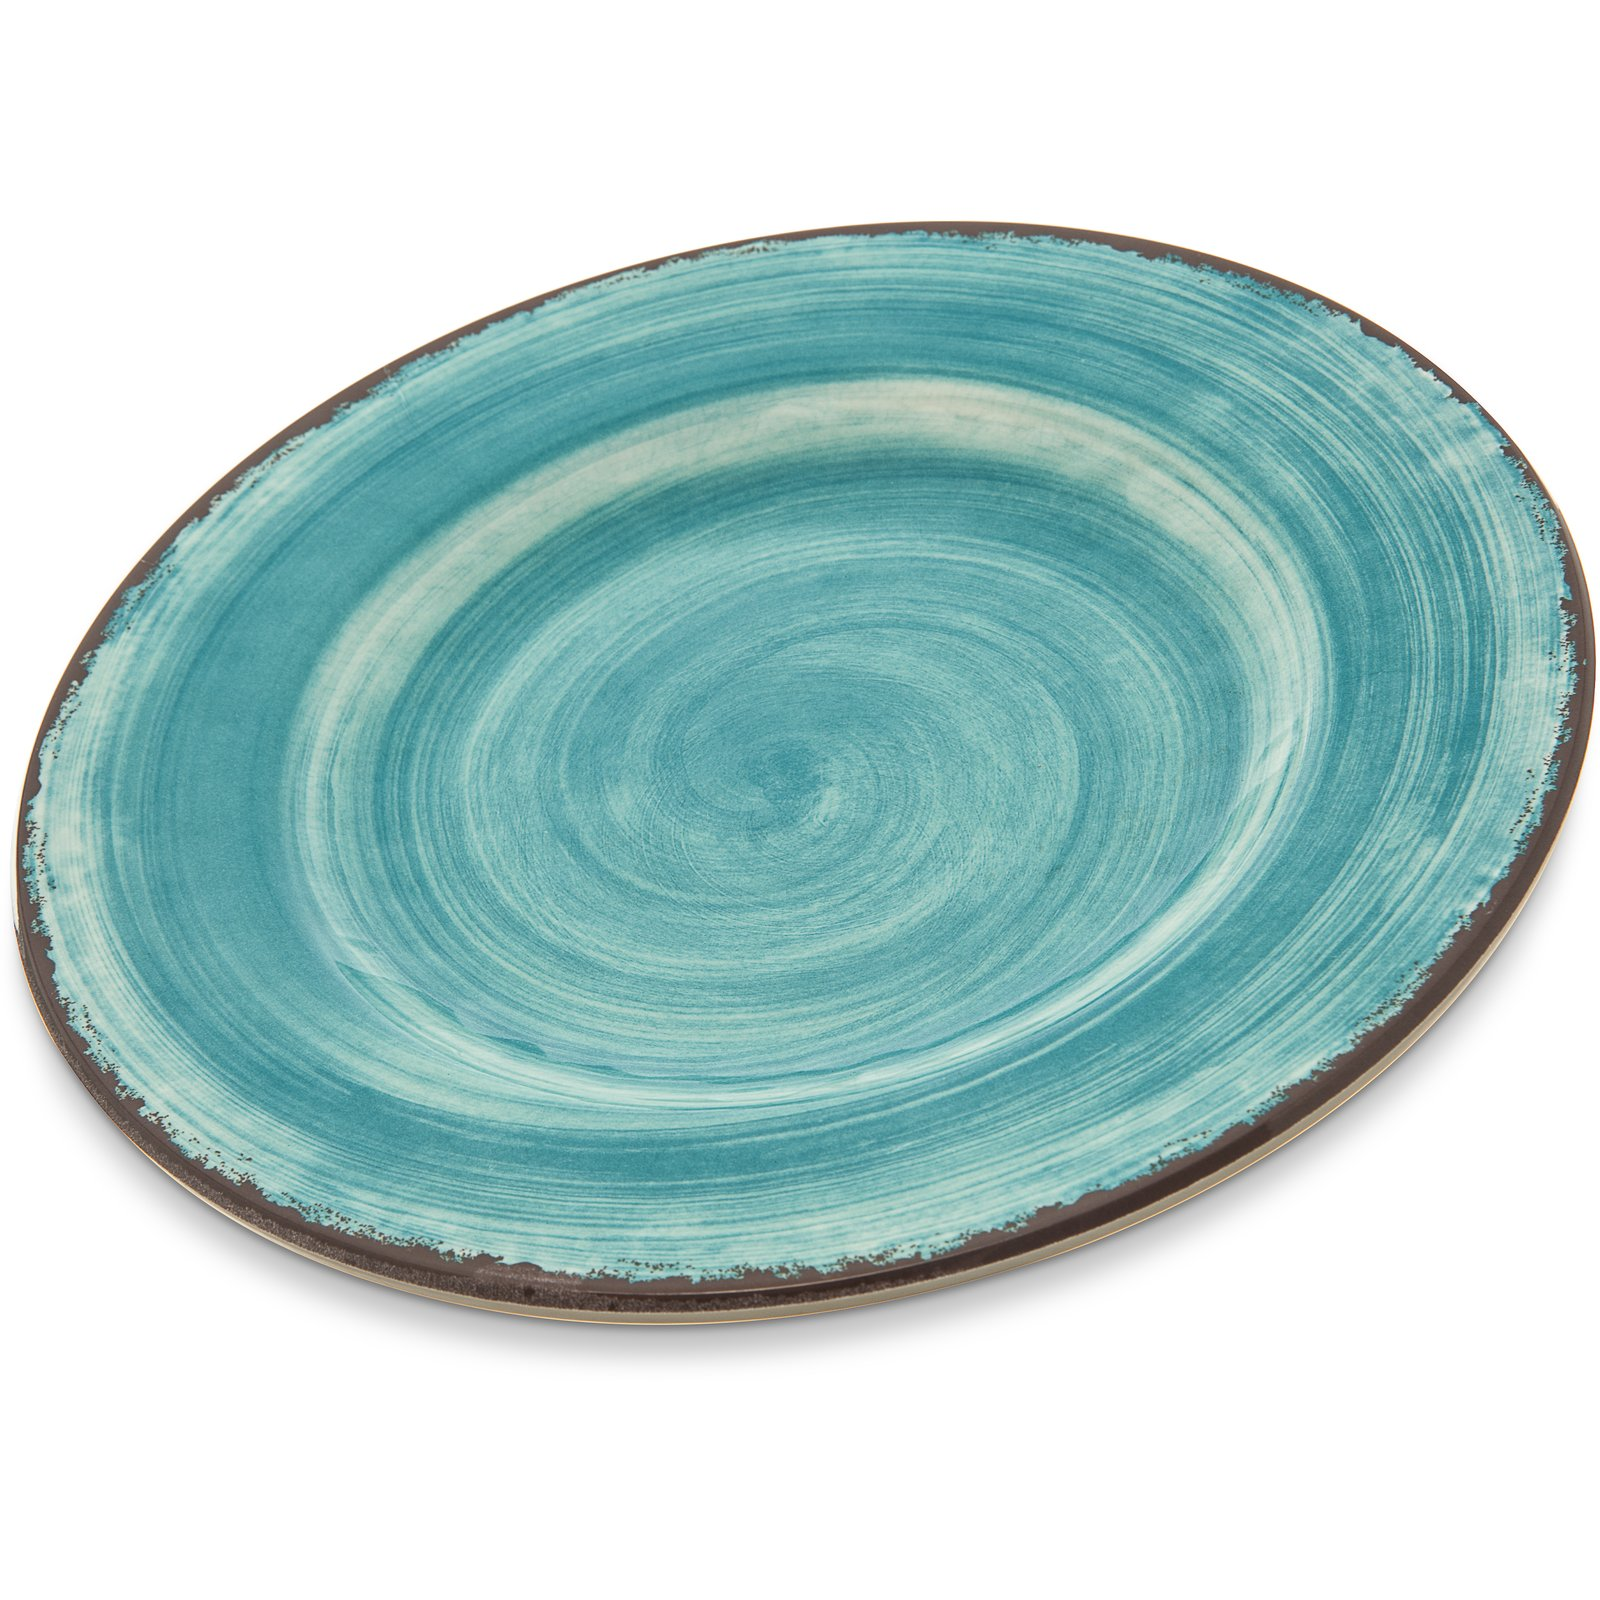 5400215 - Mingle Melamine Dinner Plate 9\  - Aqua  sc 1 st  Carlisle FoodService Products & 5400215 - Mingle Melamine Dinner Plate 9\